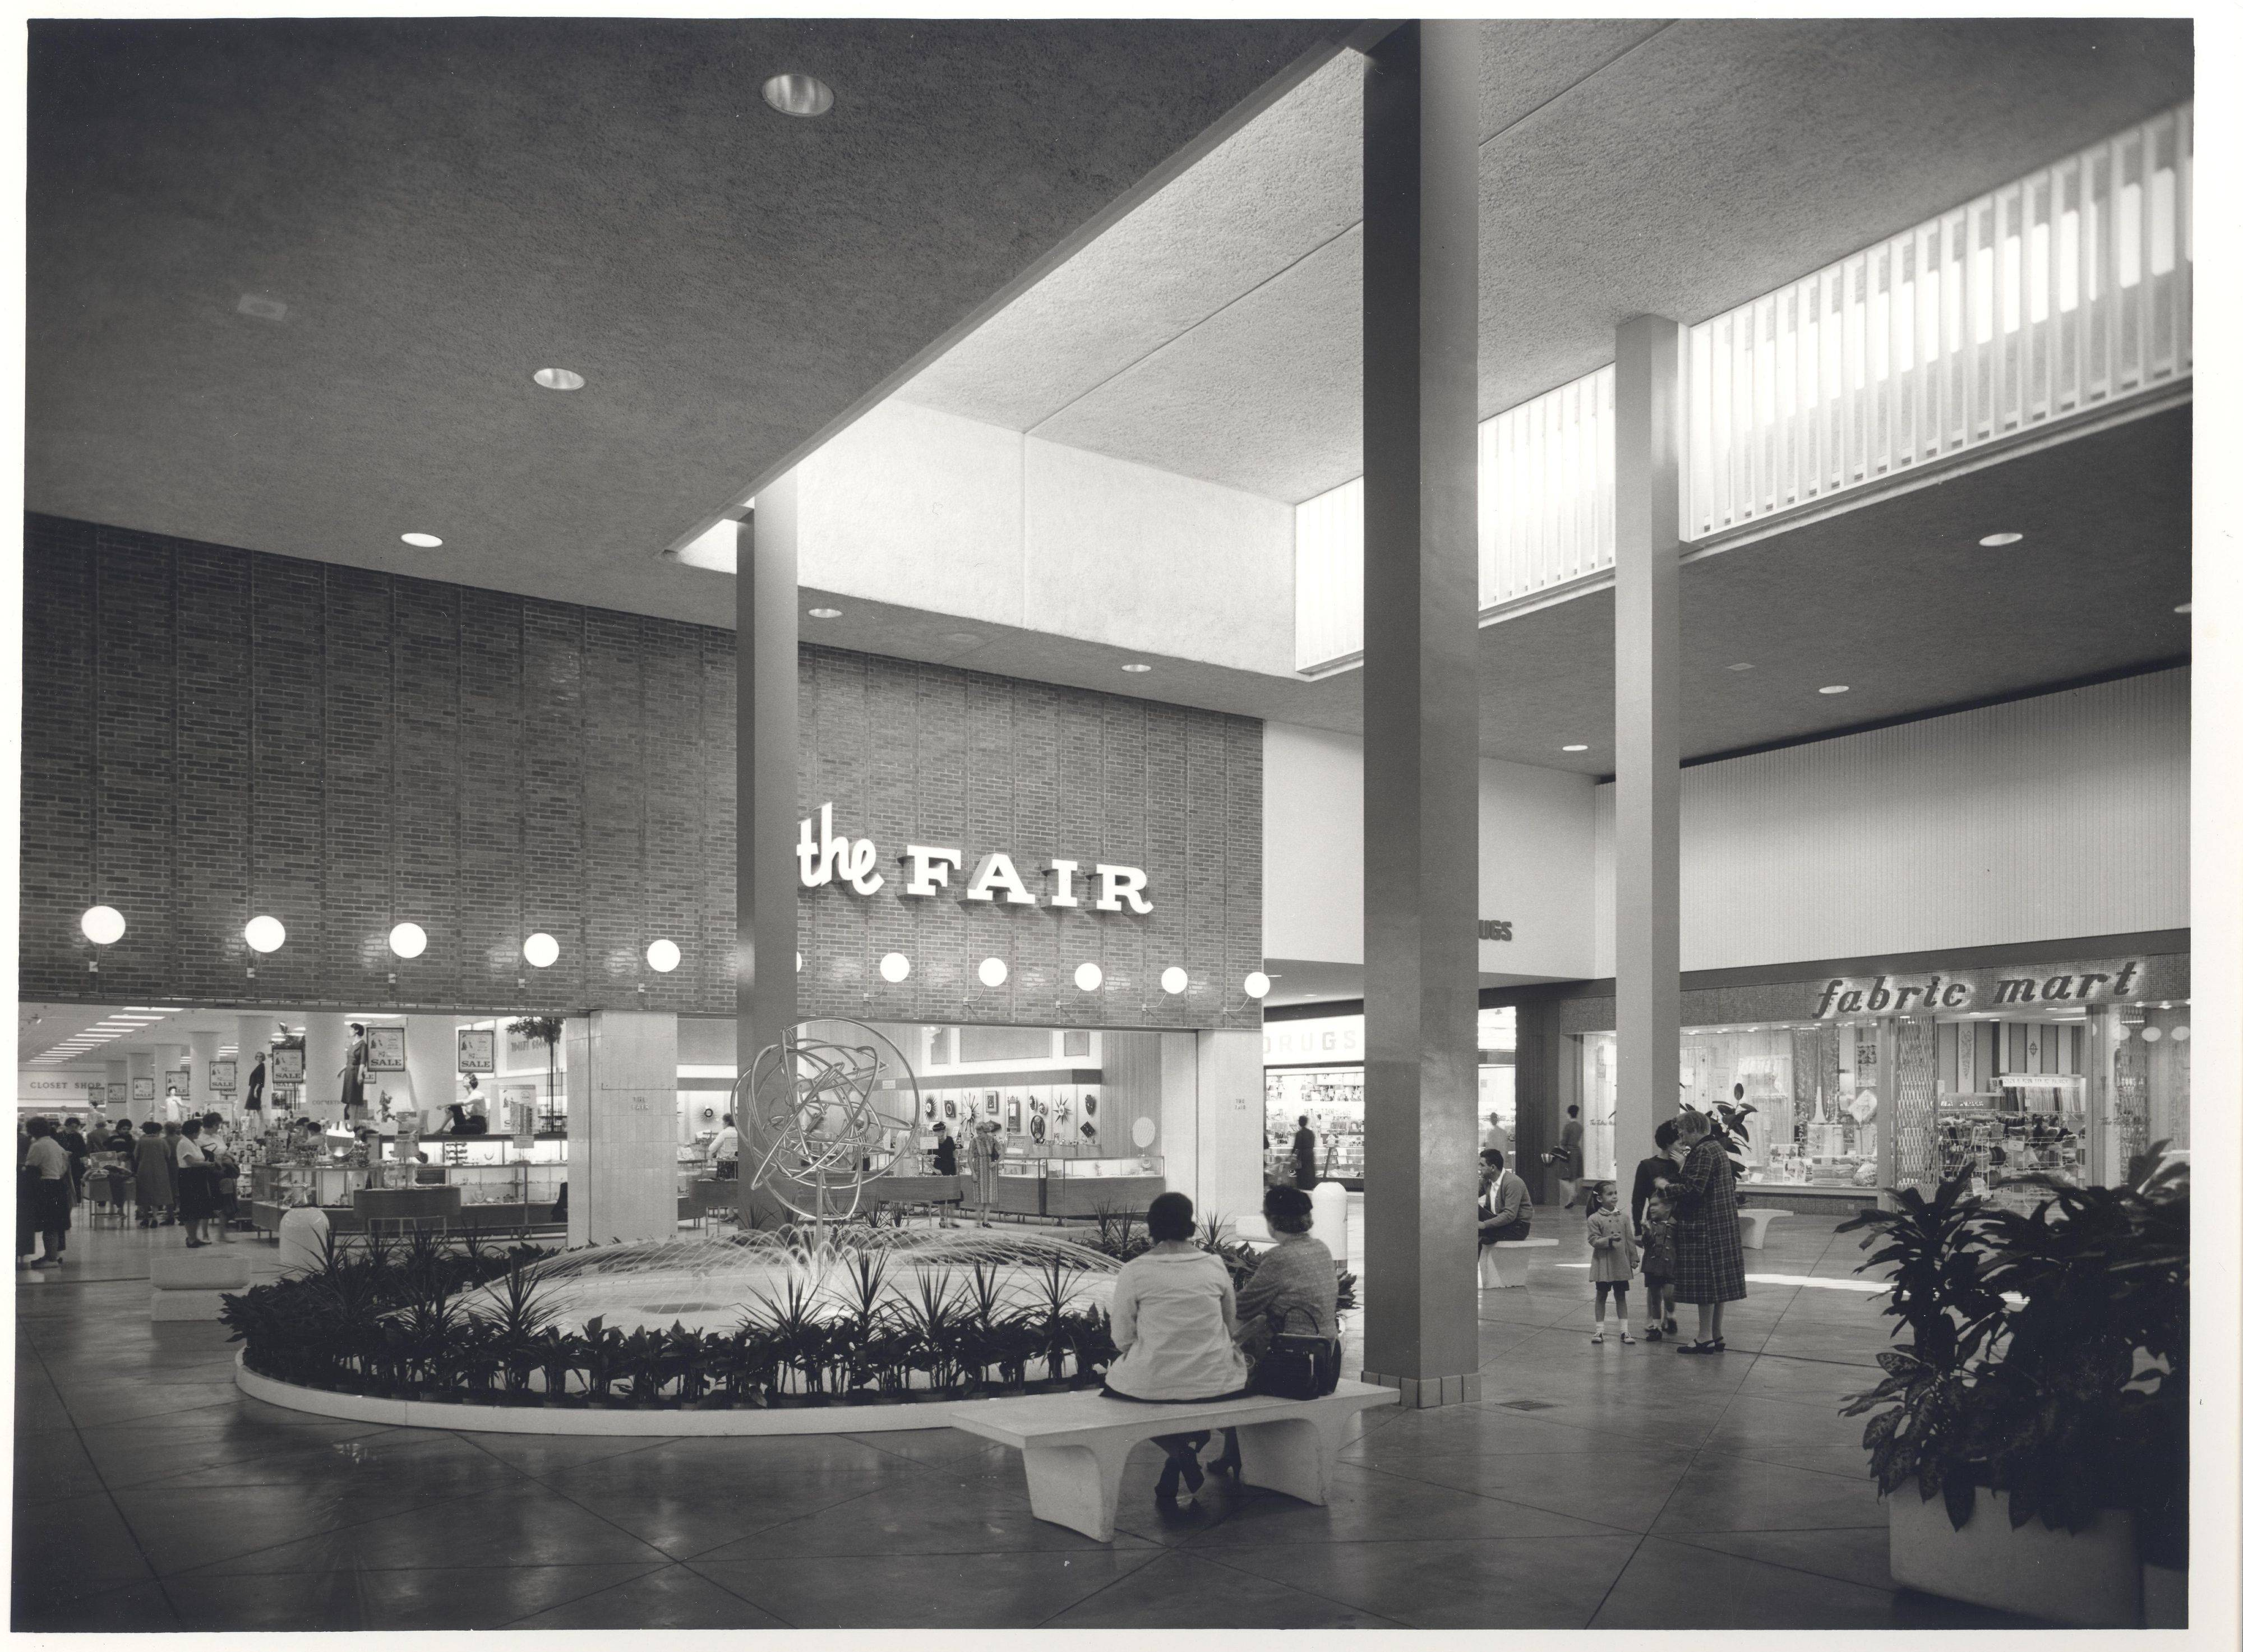 When Randhurst Mall opened in 1962 in Mount Prospect, it was the first air-conditioned shopping center.